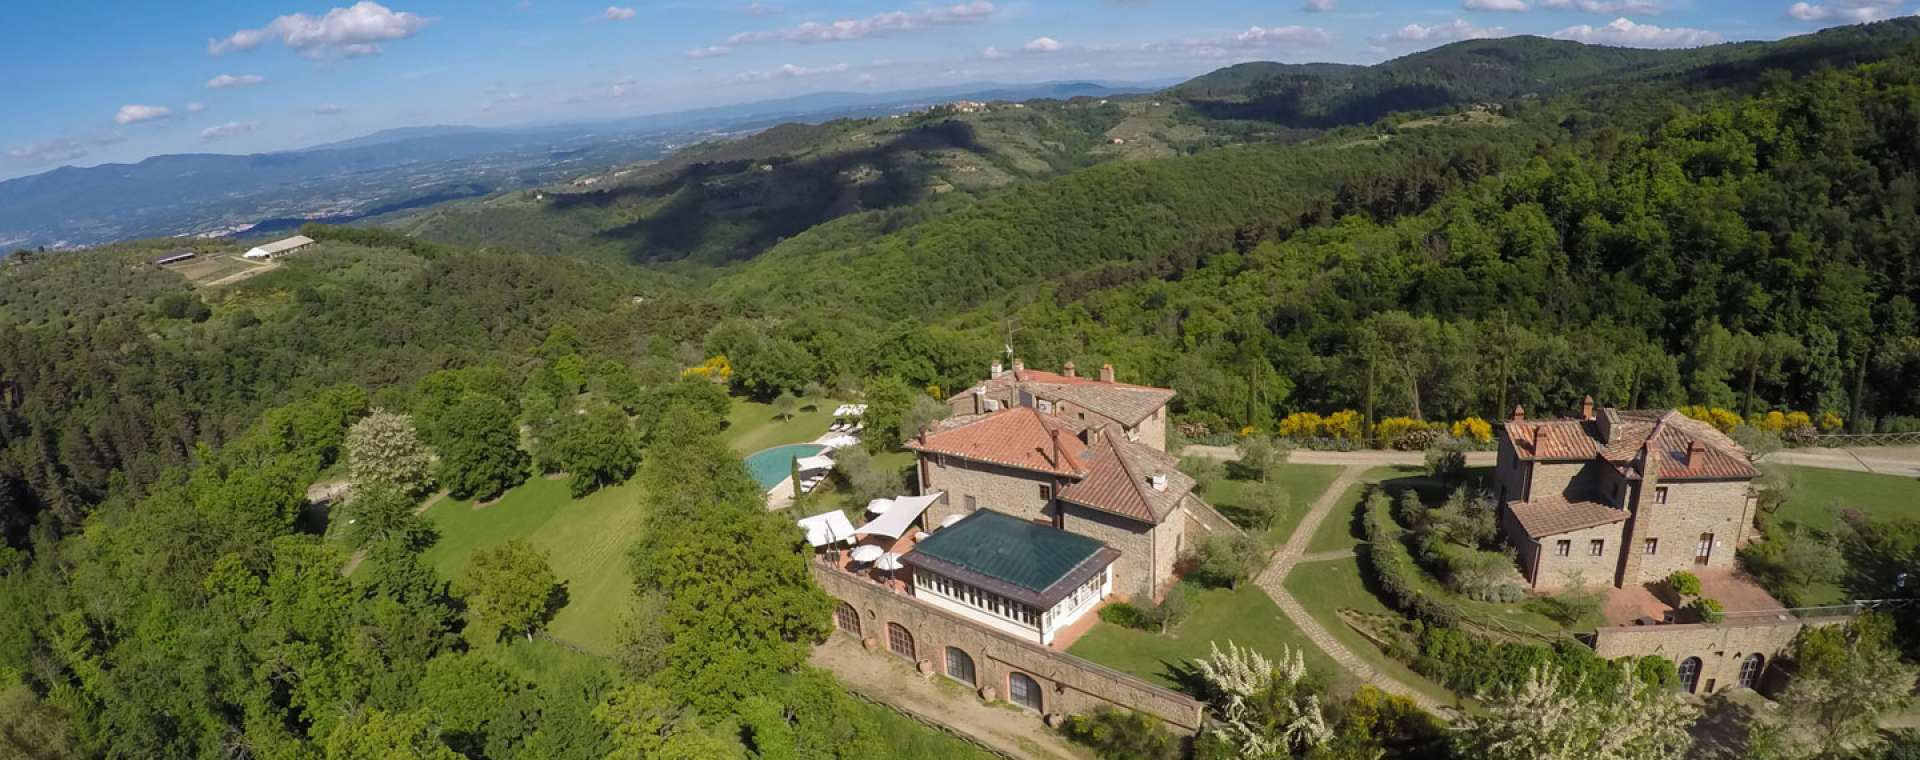 How to Spend a Week in a Tuscan Villa